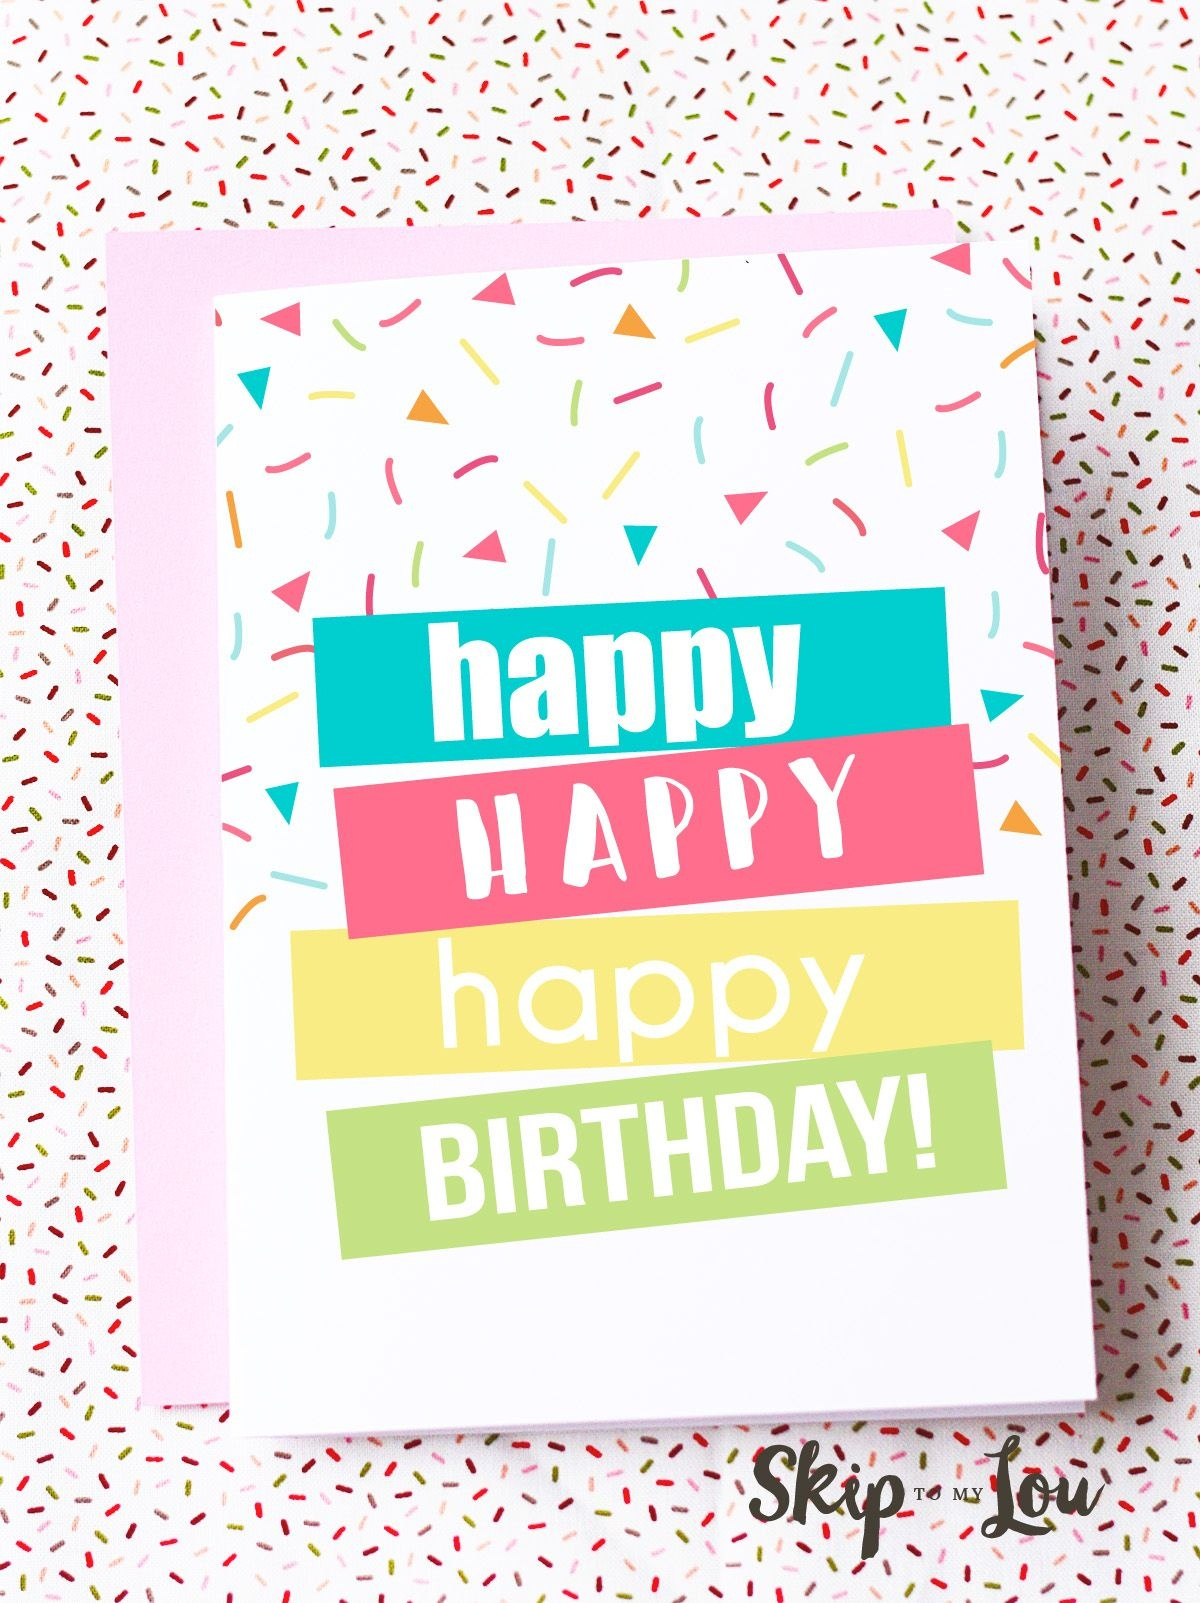 Free Printable Birthday Cards | Best Of Pinterest | Free Printable - Free Printable Birthday Cards For Adults